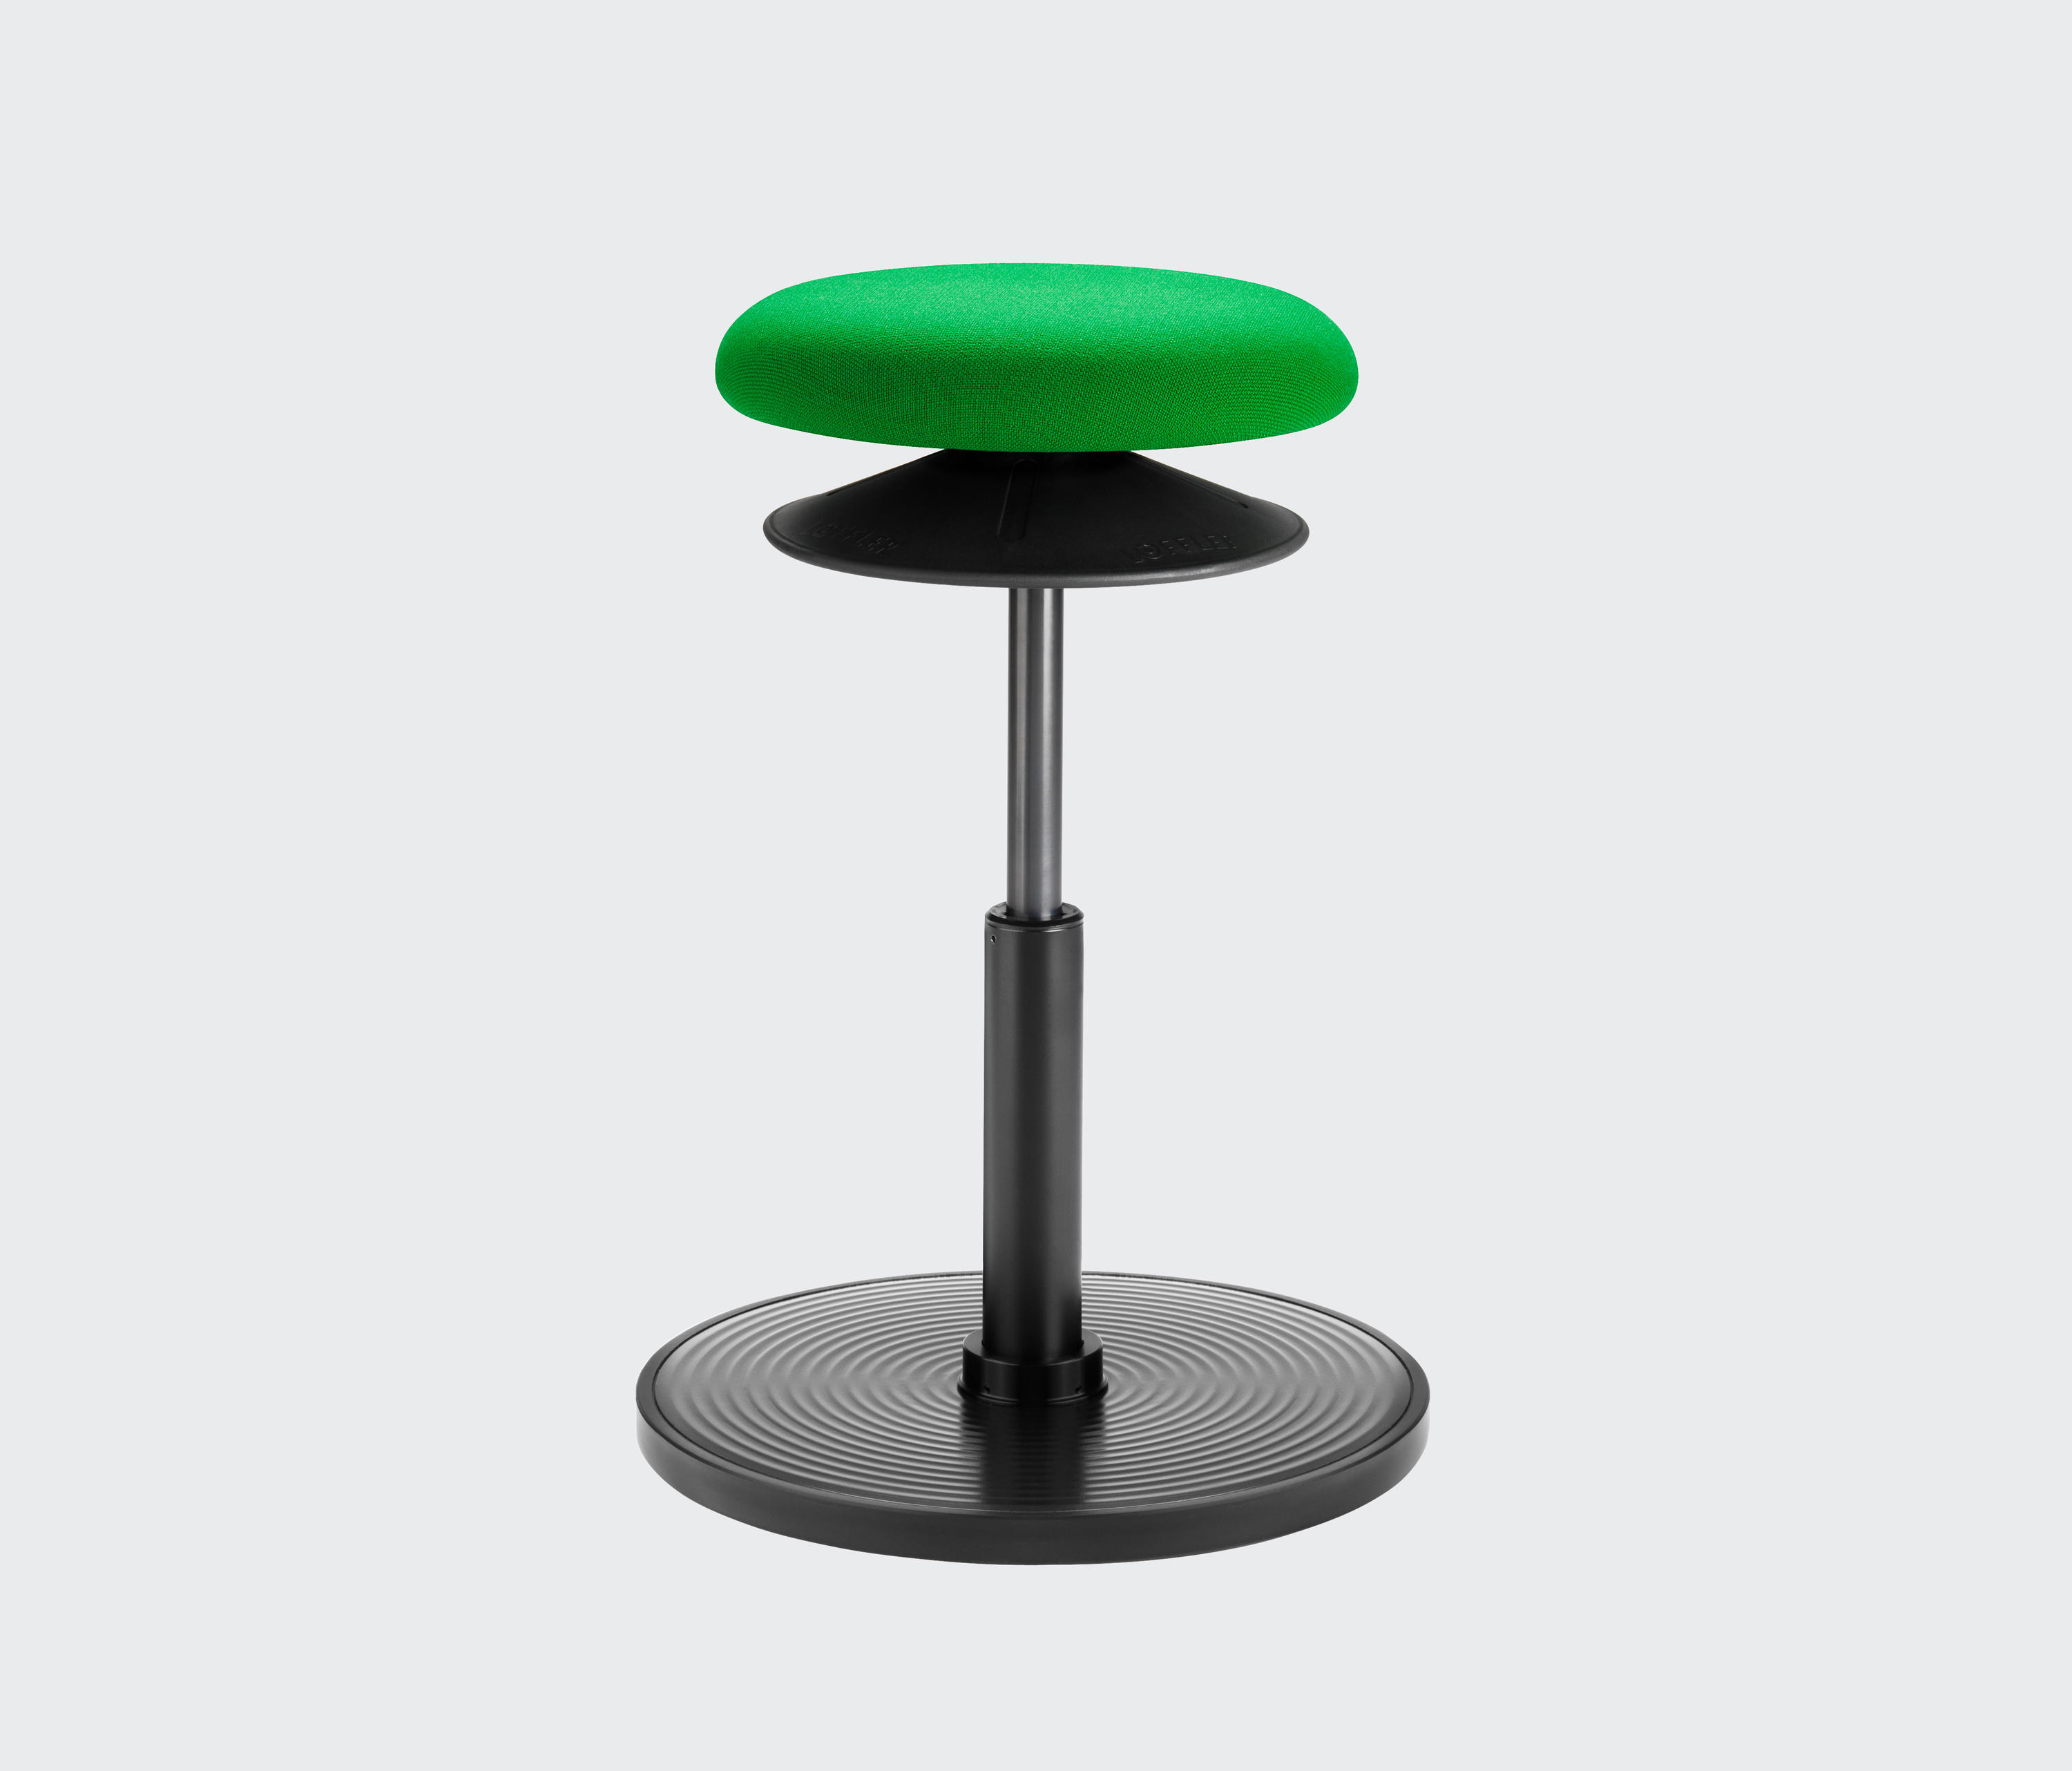 stand lean chair big round swivel ergo stools from lÖffler architonic